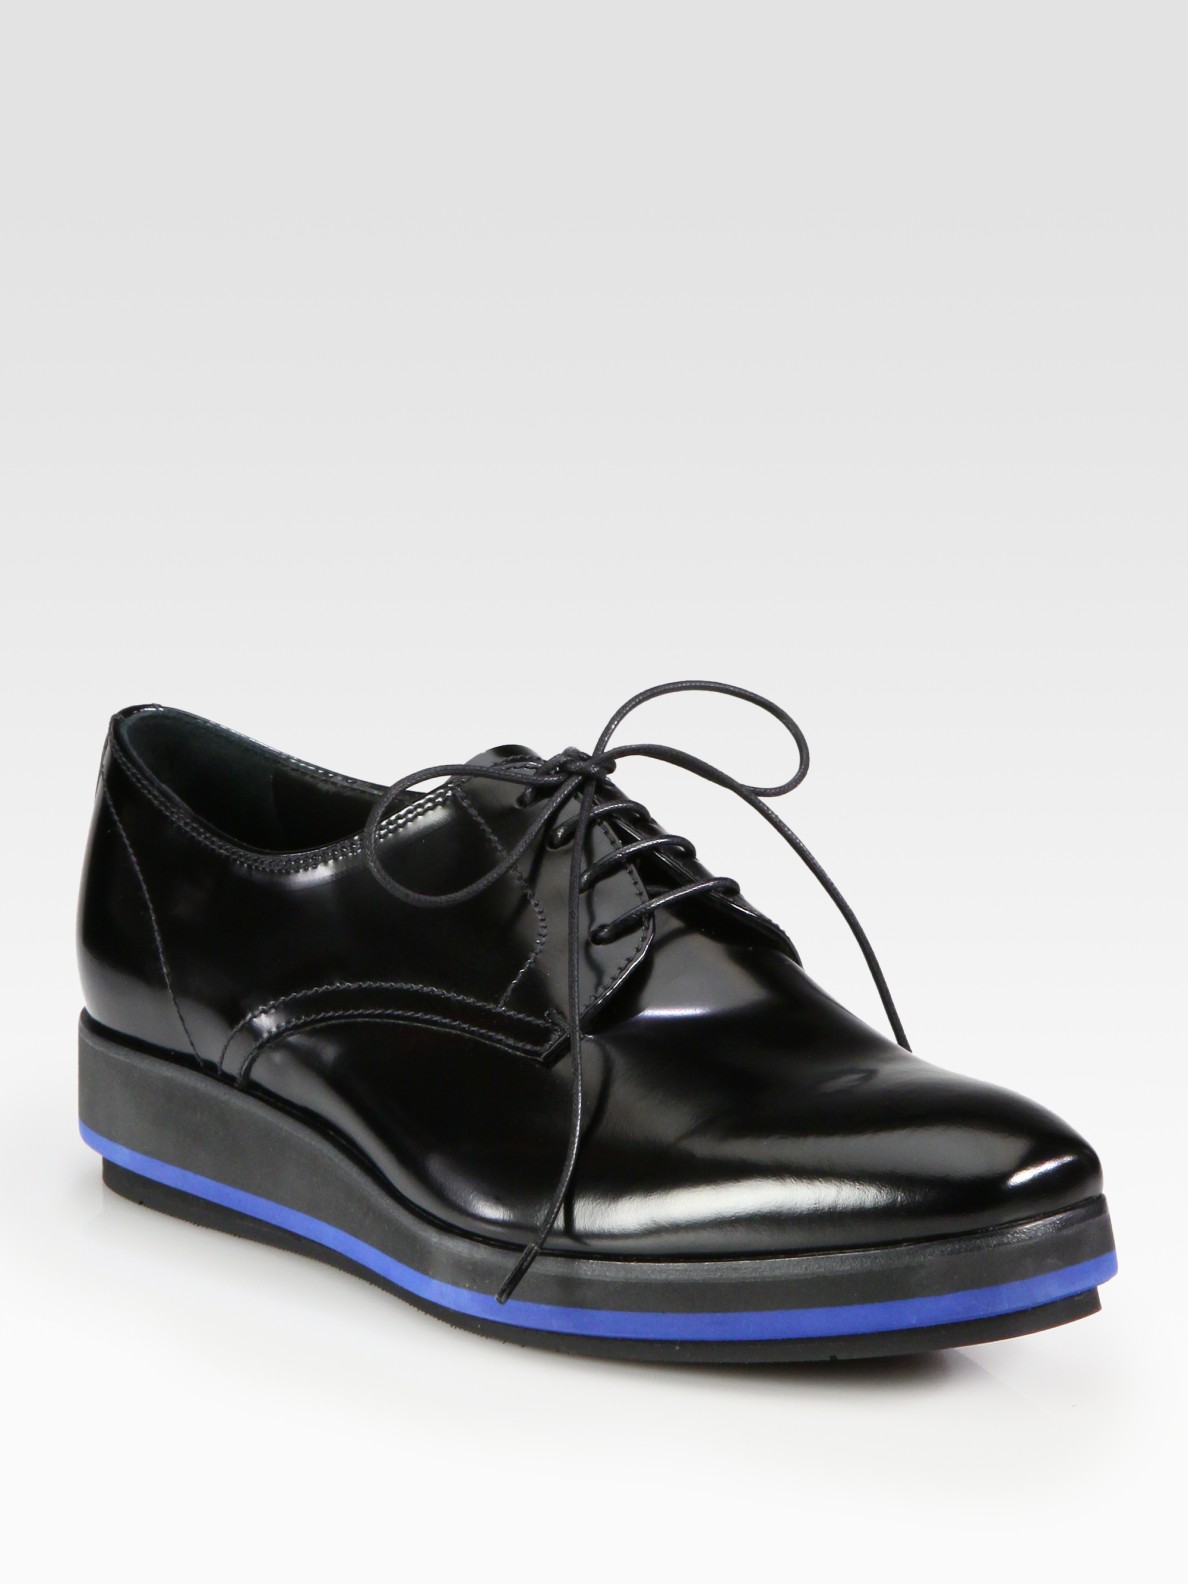 Prada Spazzolato Lace Up Platform Oxfords In Black Lyst